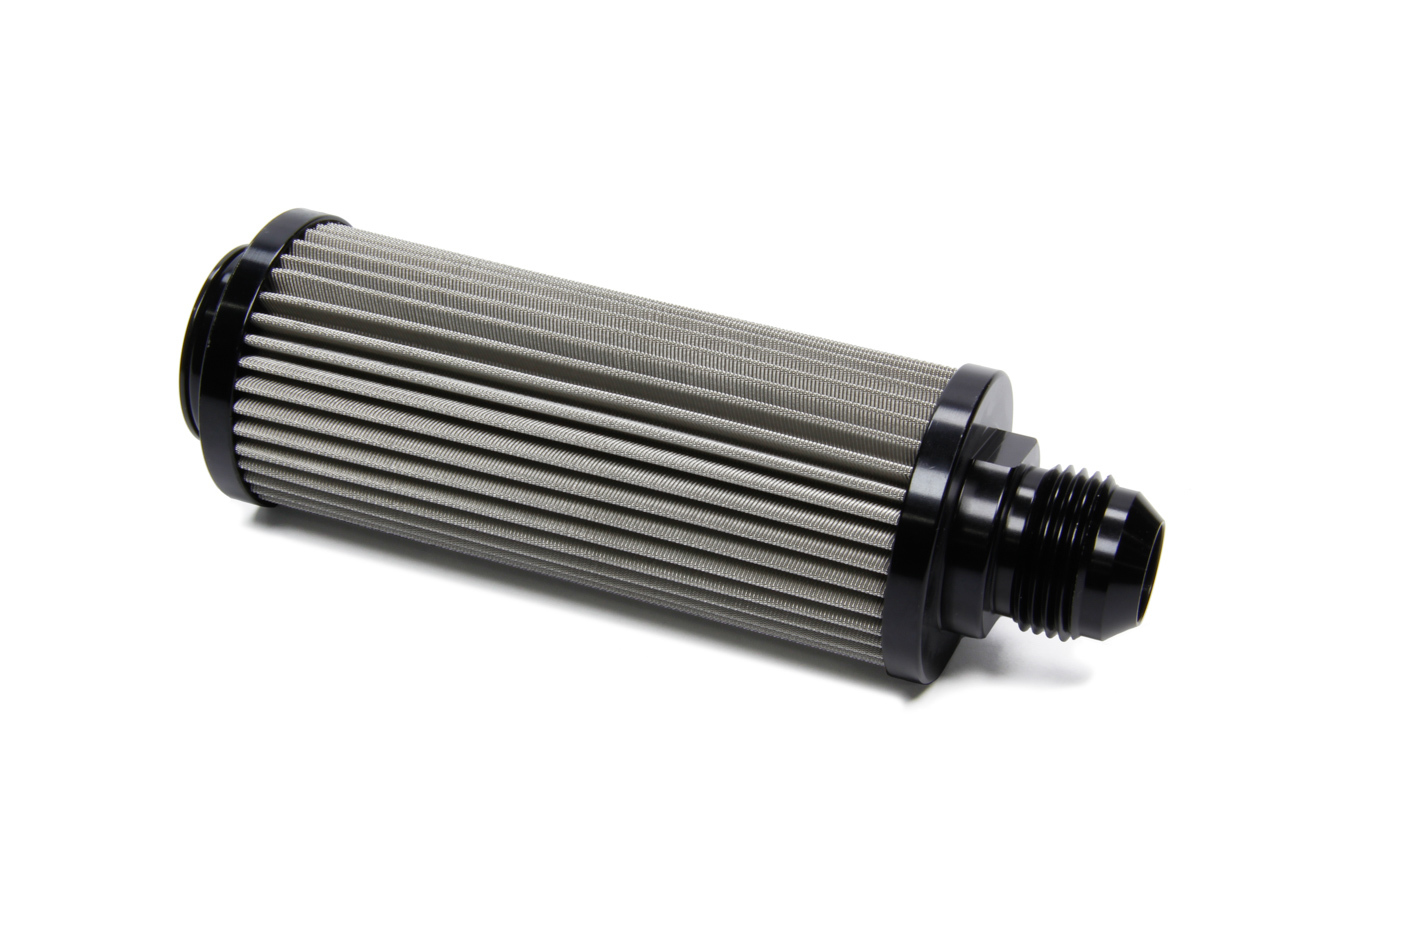 Ti22 Performance 5140 Fuel Filter, In-Tank, Straight, 60 Micron, Stainless Element, 12 AN, Aluminum, Black Anodize, Each